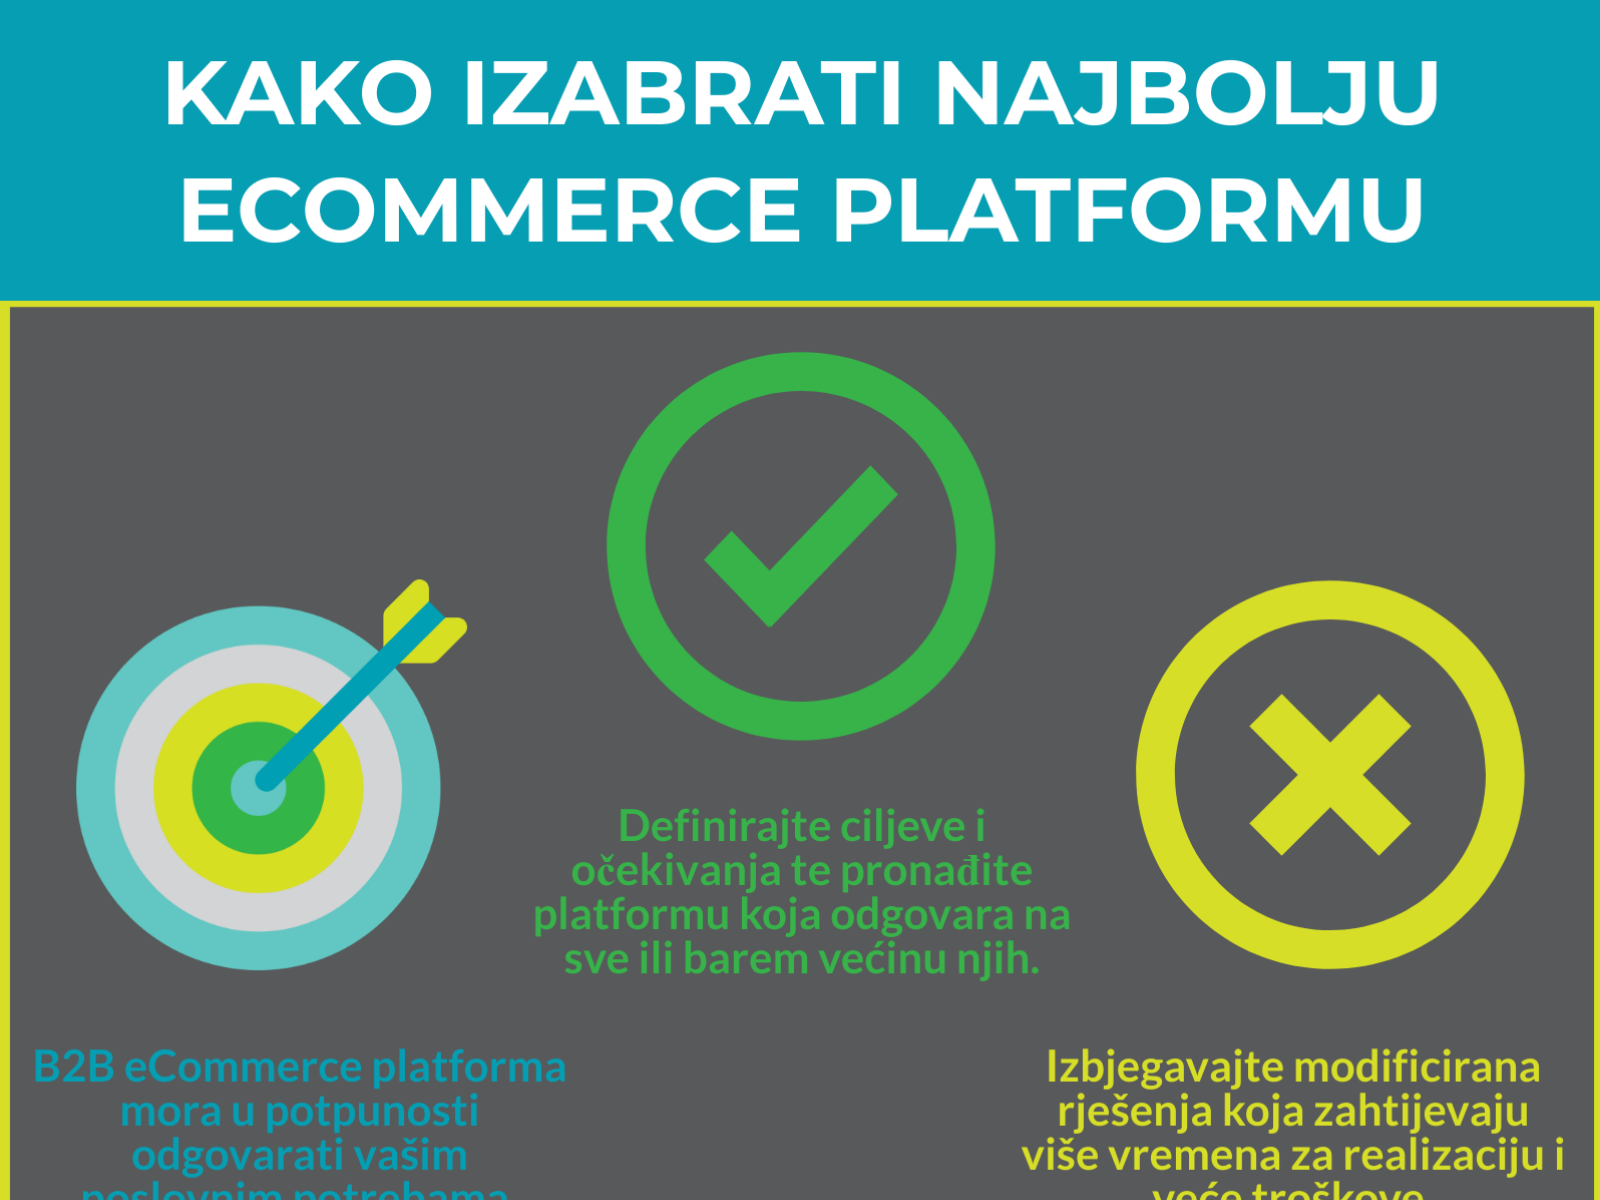 b2b ecommerce erp microsoft dynamics nav integration